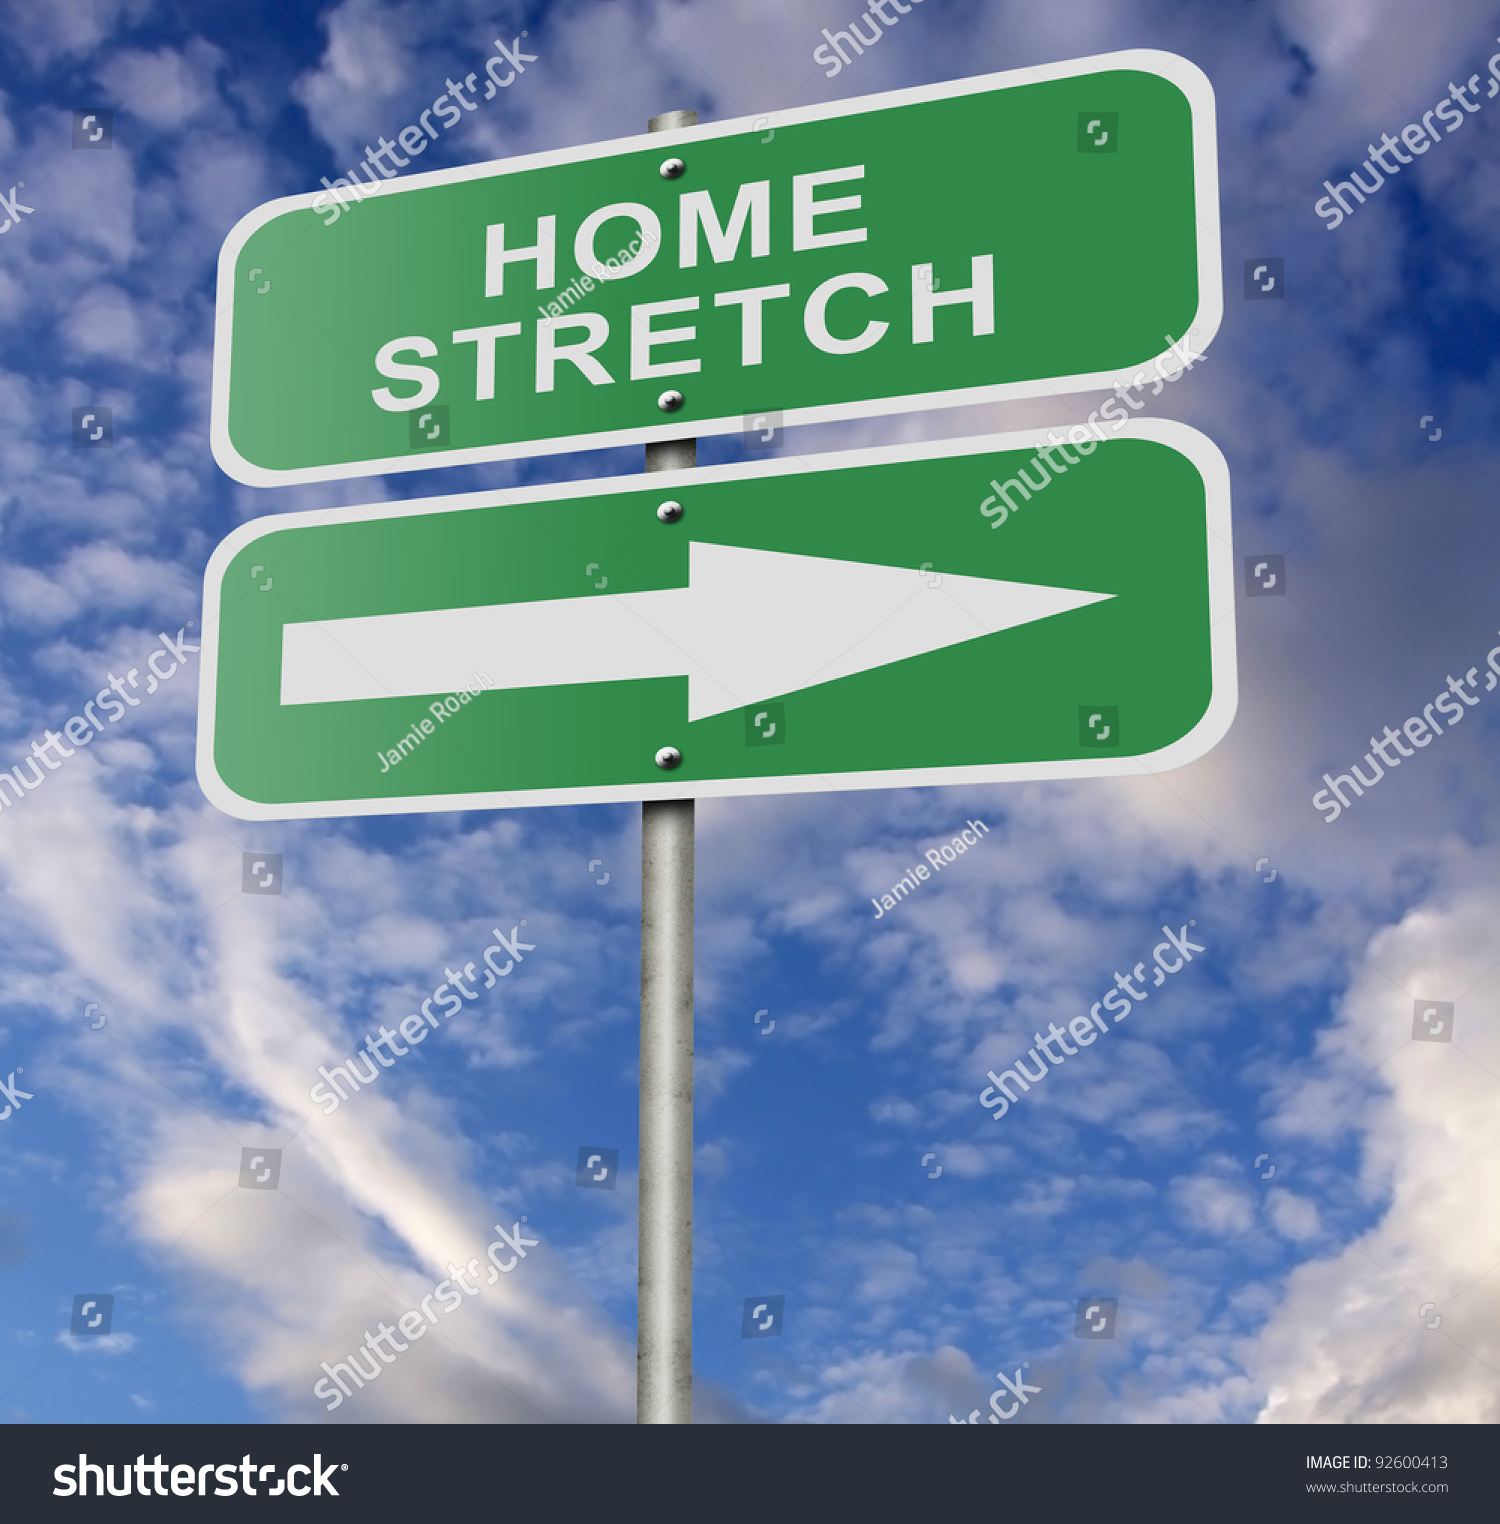 Image result for illustration of the home stretch